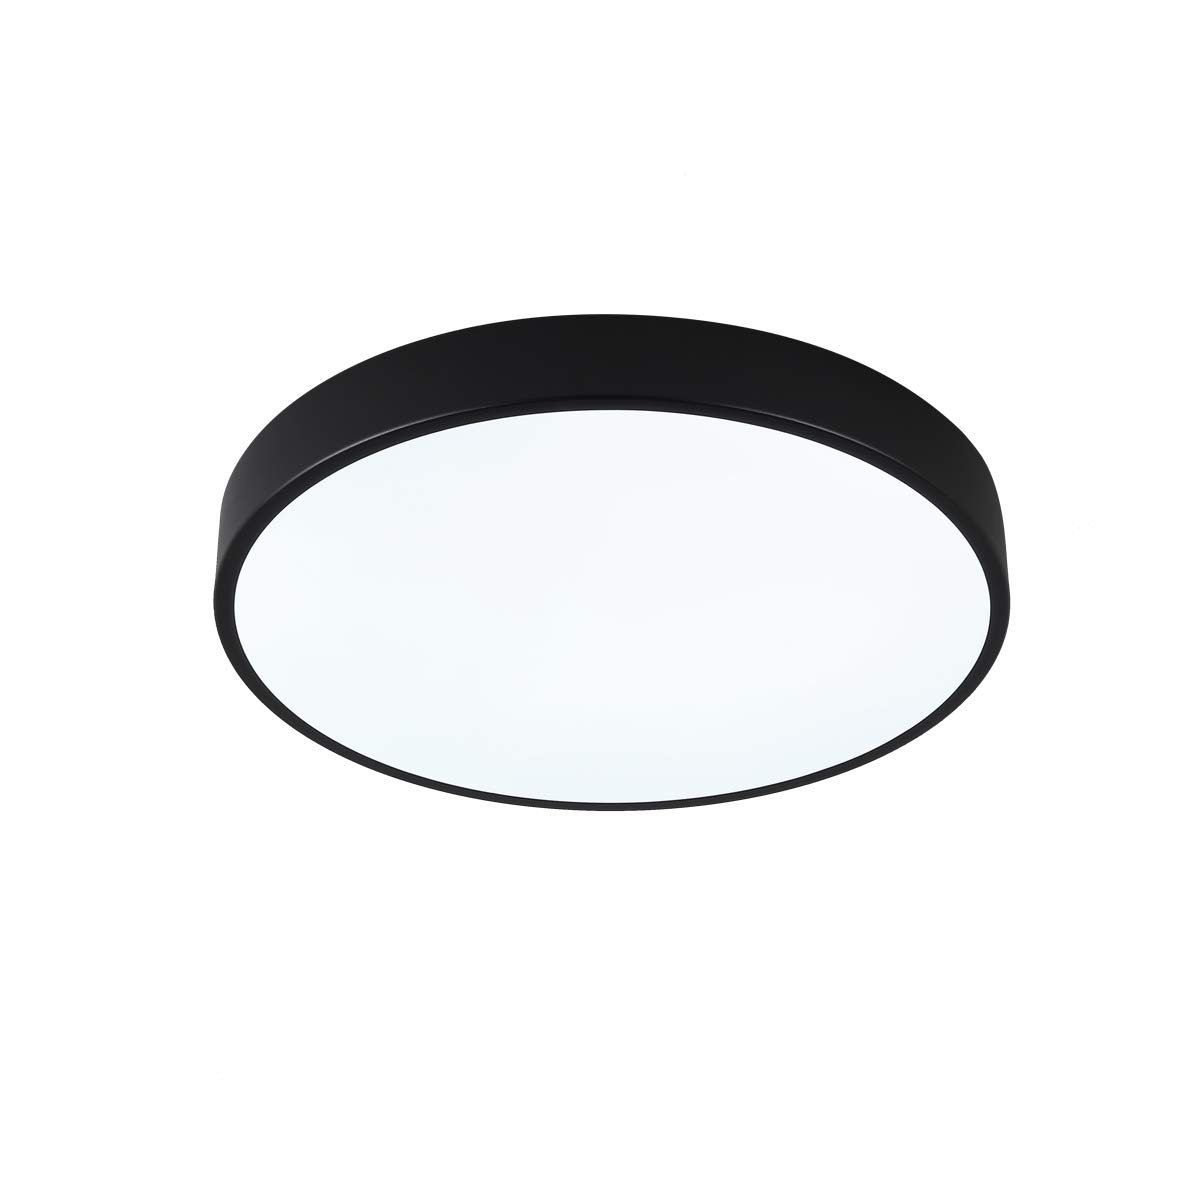 Led Modern Acryl Alloy Silver Round 5cm Super Thin Led Lamp.led Light.ceiling Lights.led Ceiling Light.ceiling Lamp For Foyer Ceiling Lights & Fans Ceiling Lights